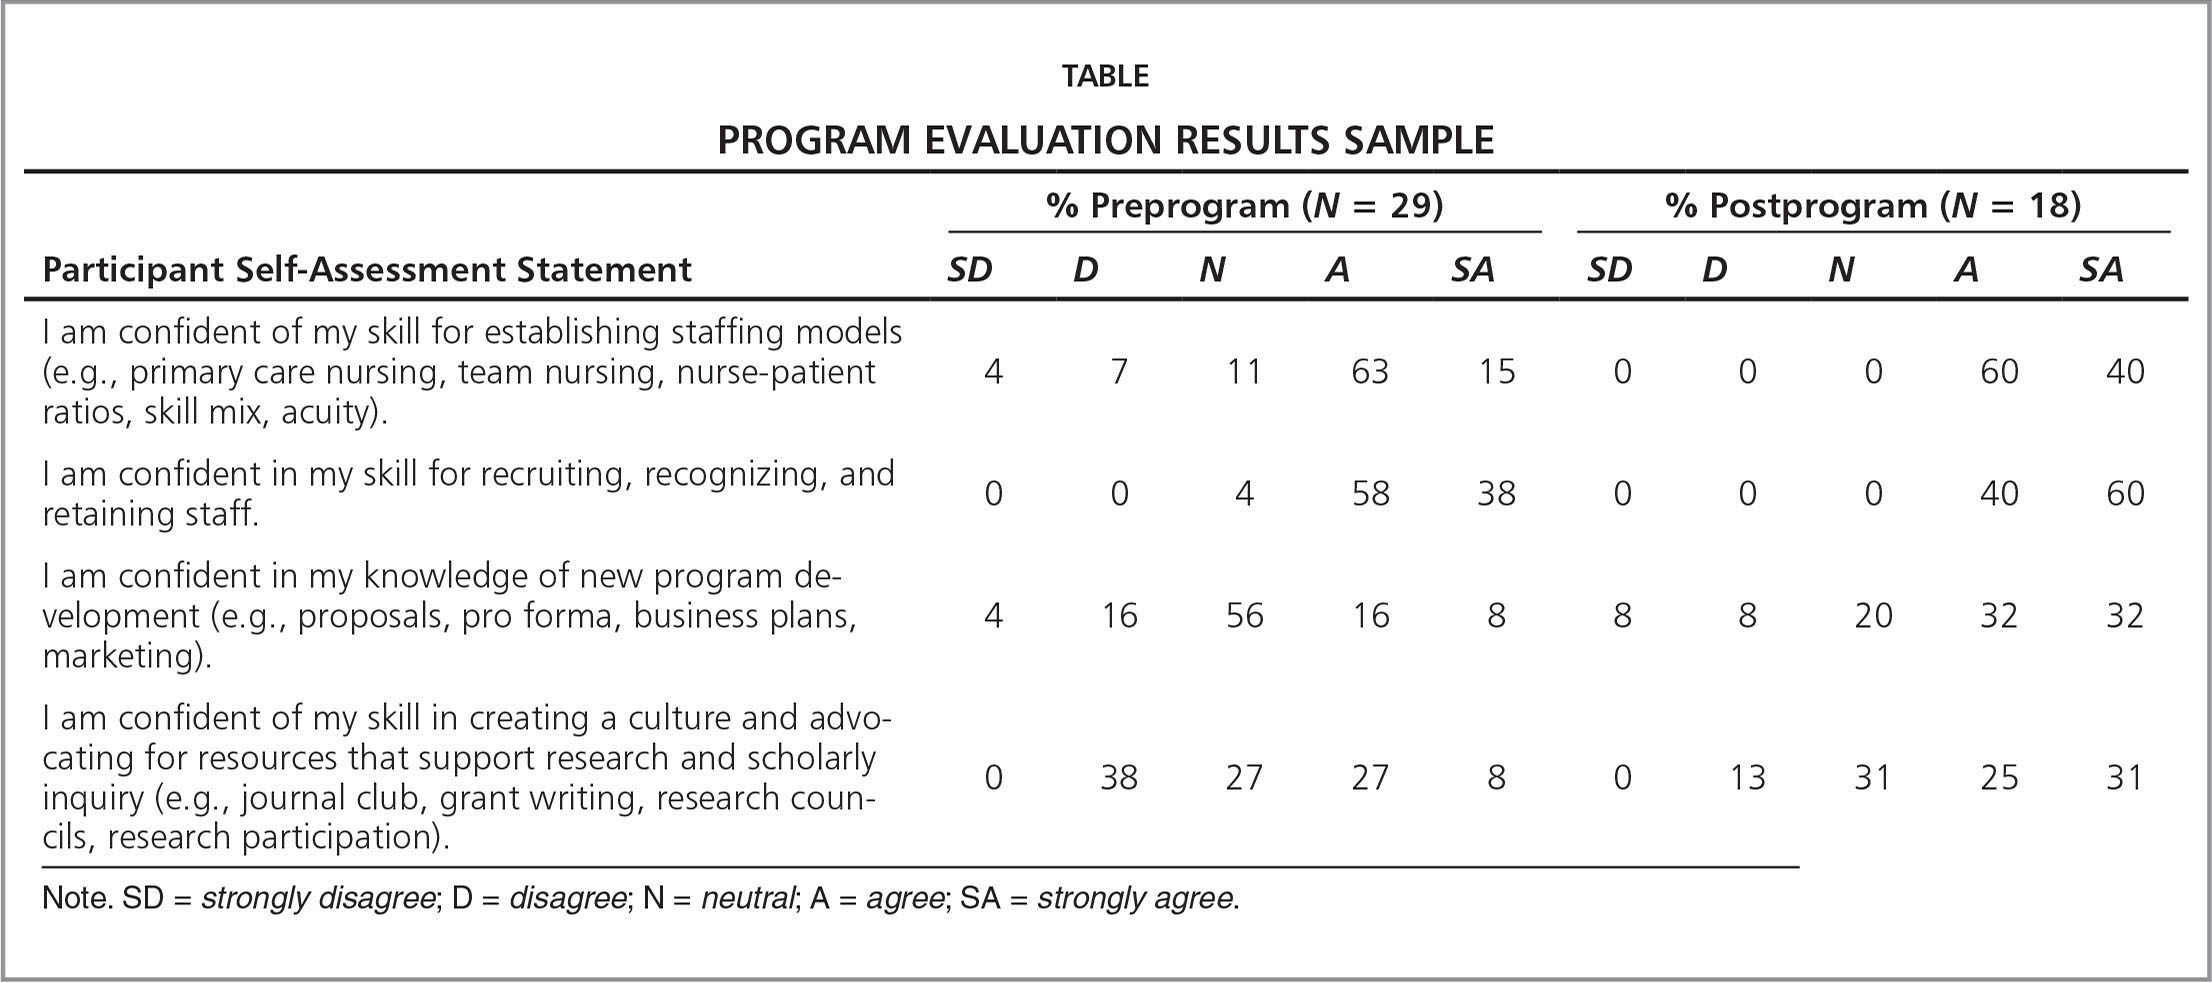 Program Evaluation Results Sample